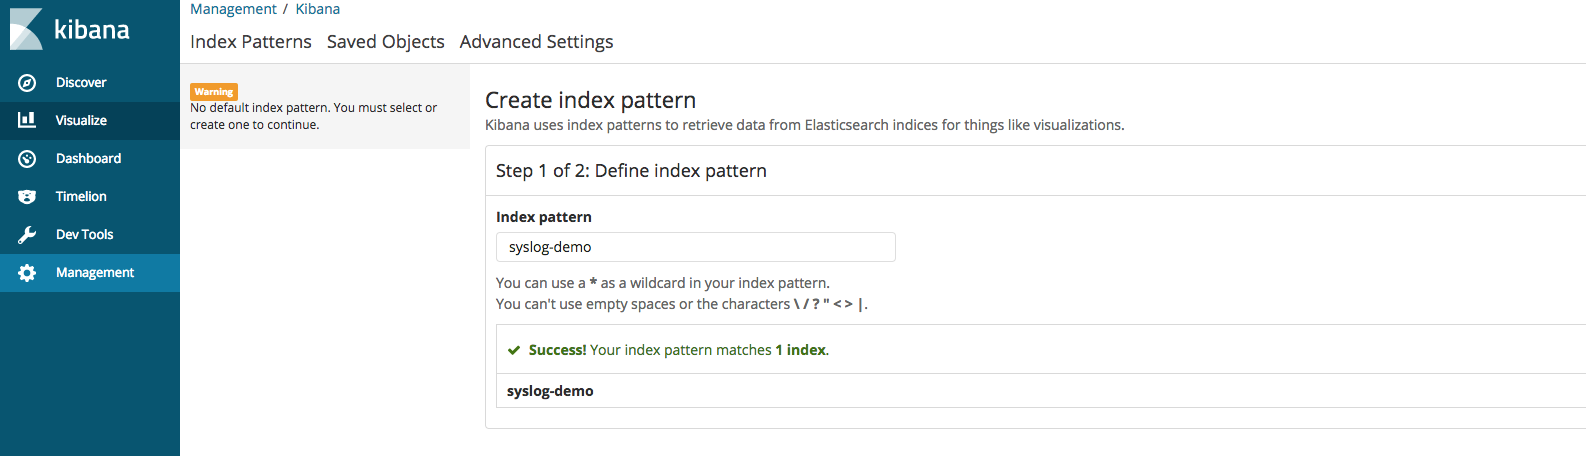 create index pattern